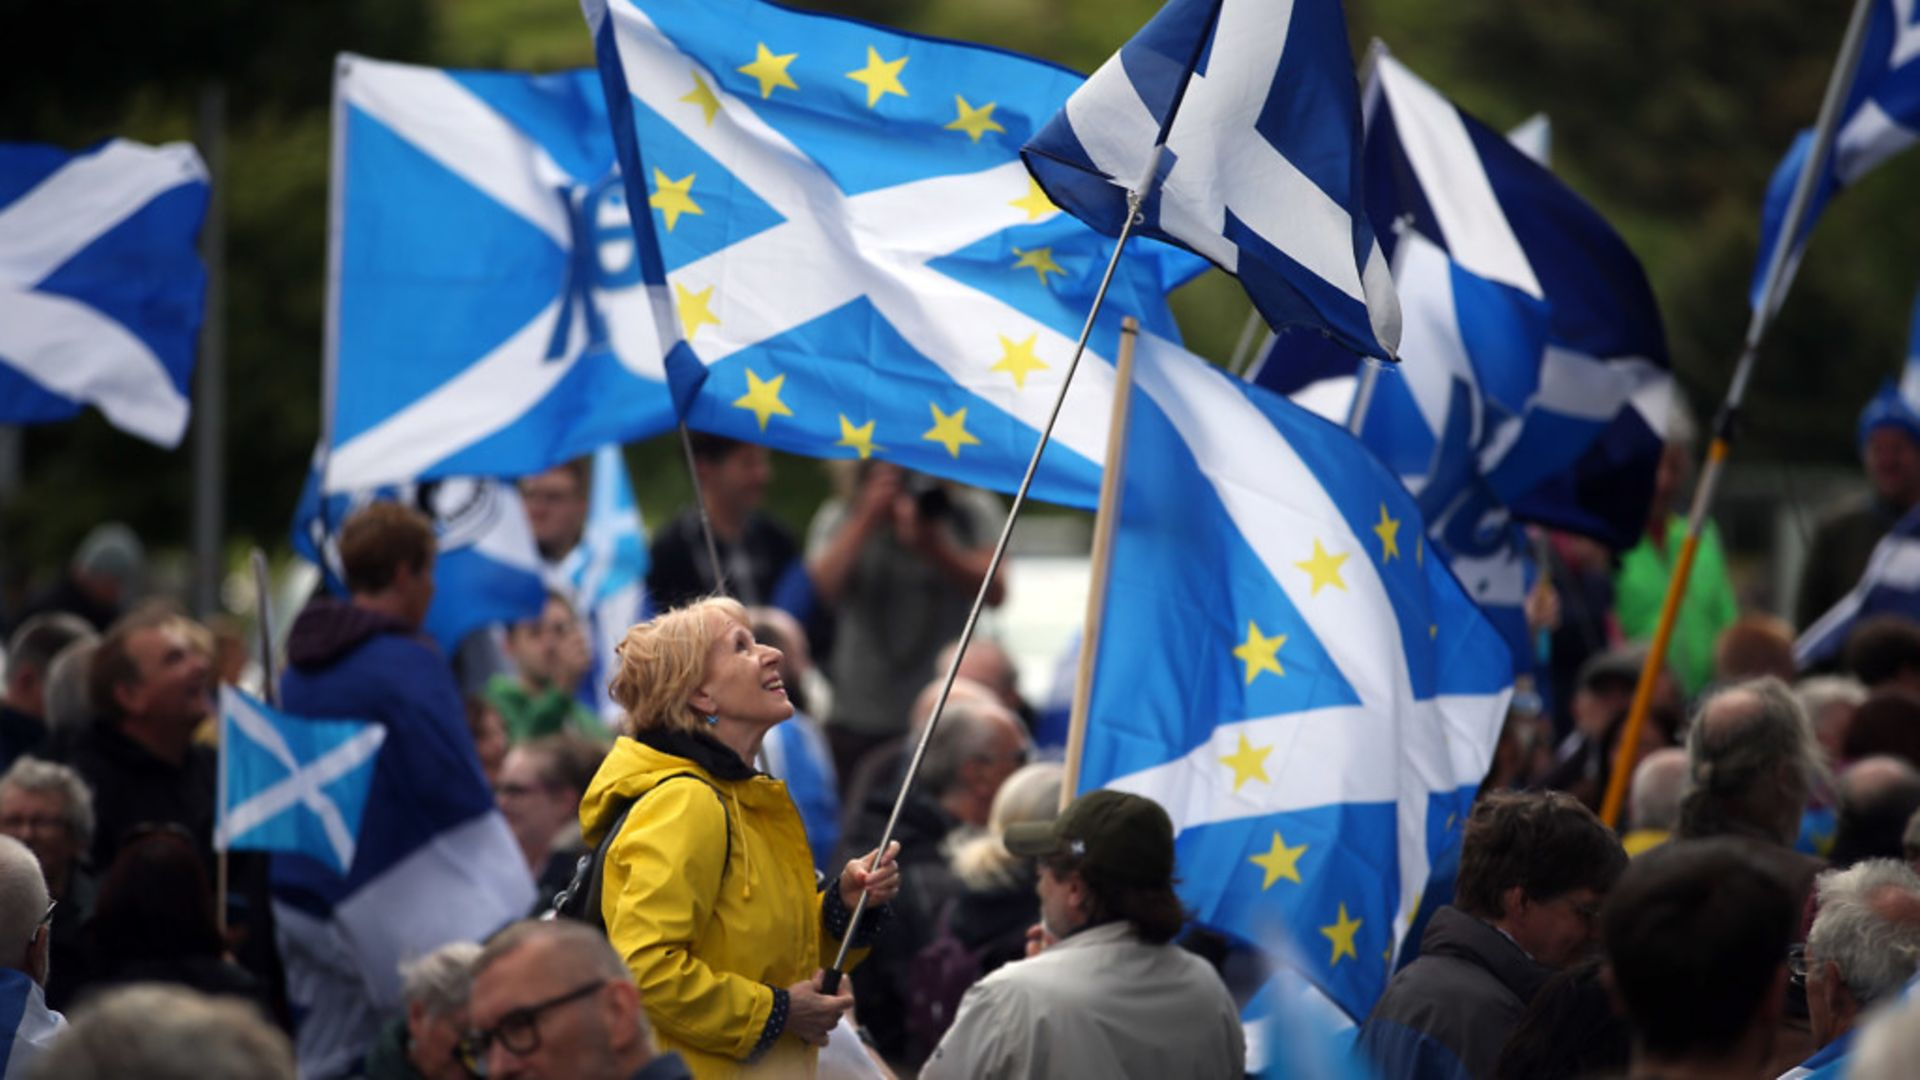 Pro-independence campaigners protest against Brexit - Credit: PA Wire/PA Images